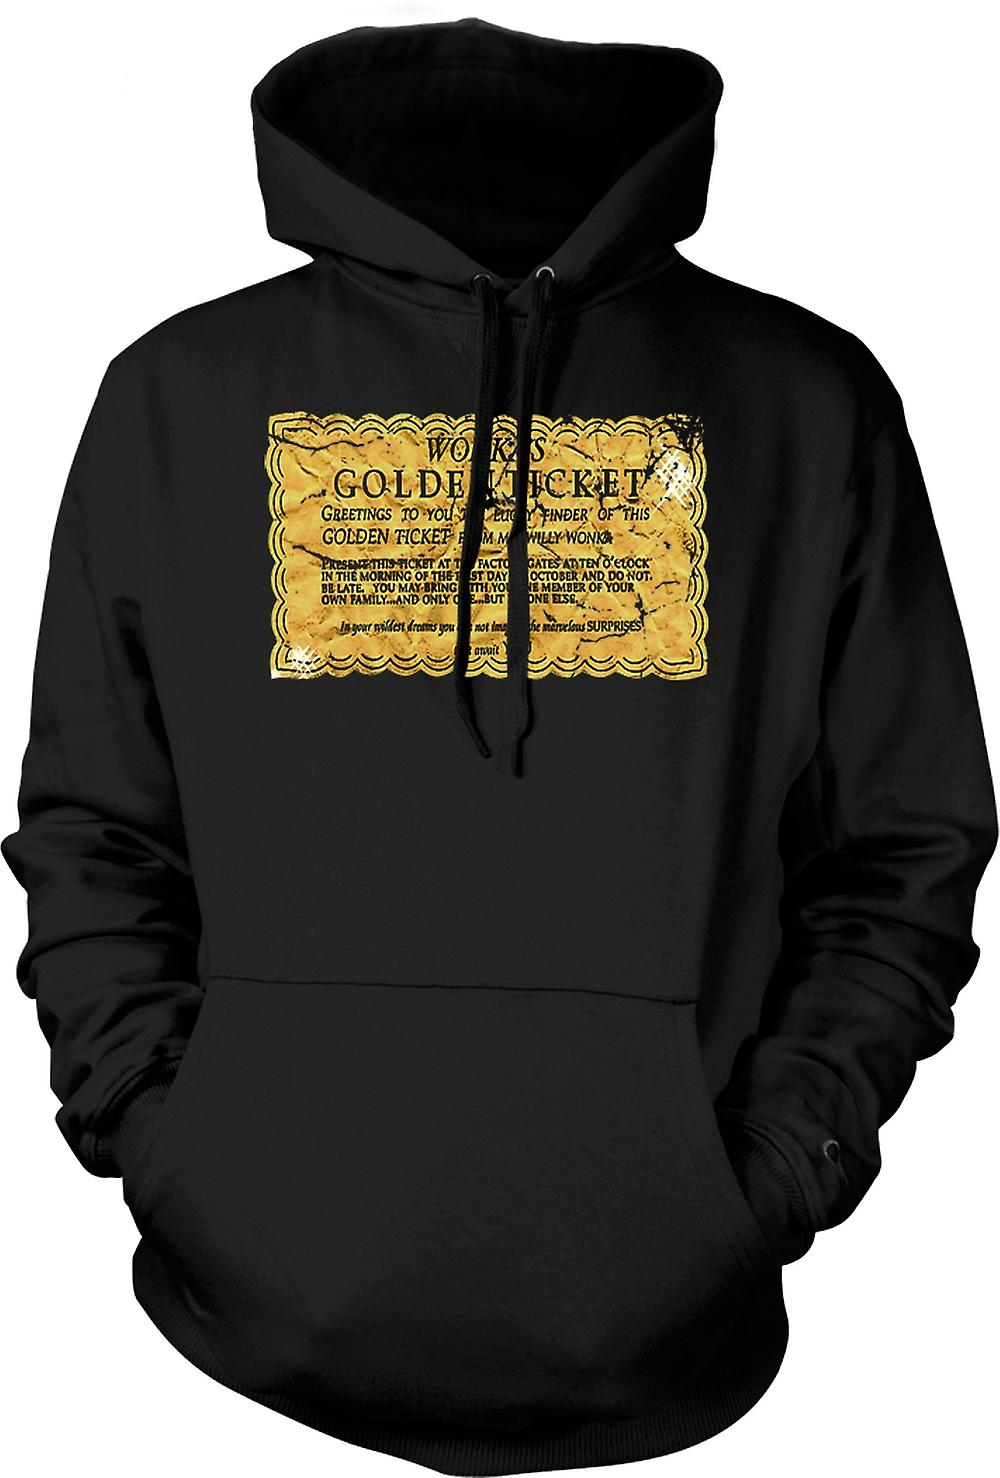 Mens Hoodie - Willy Wonka Golden Ticket - Drôle